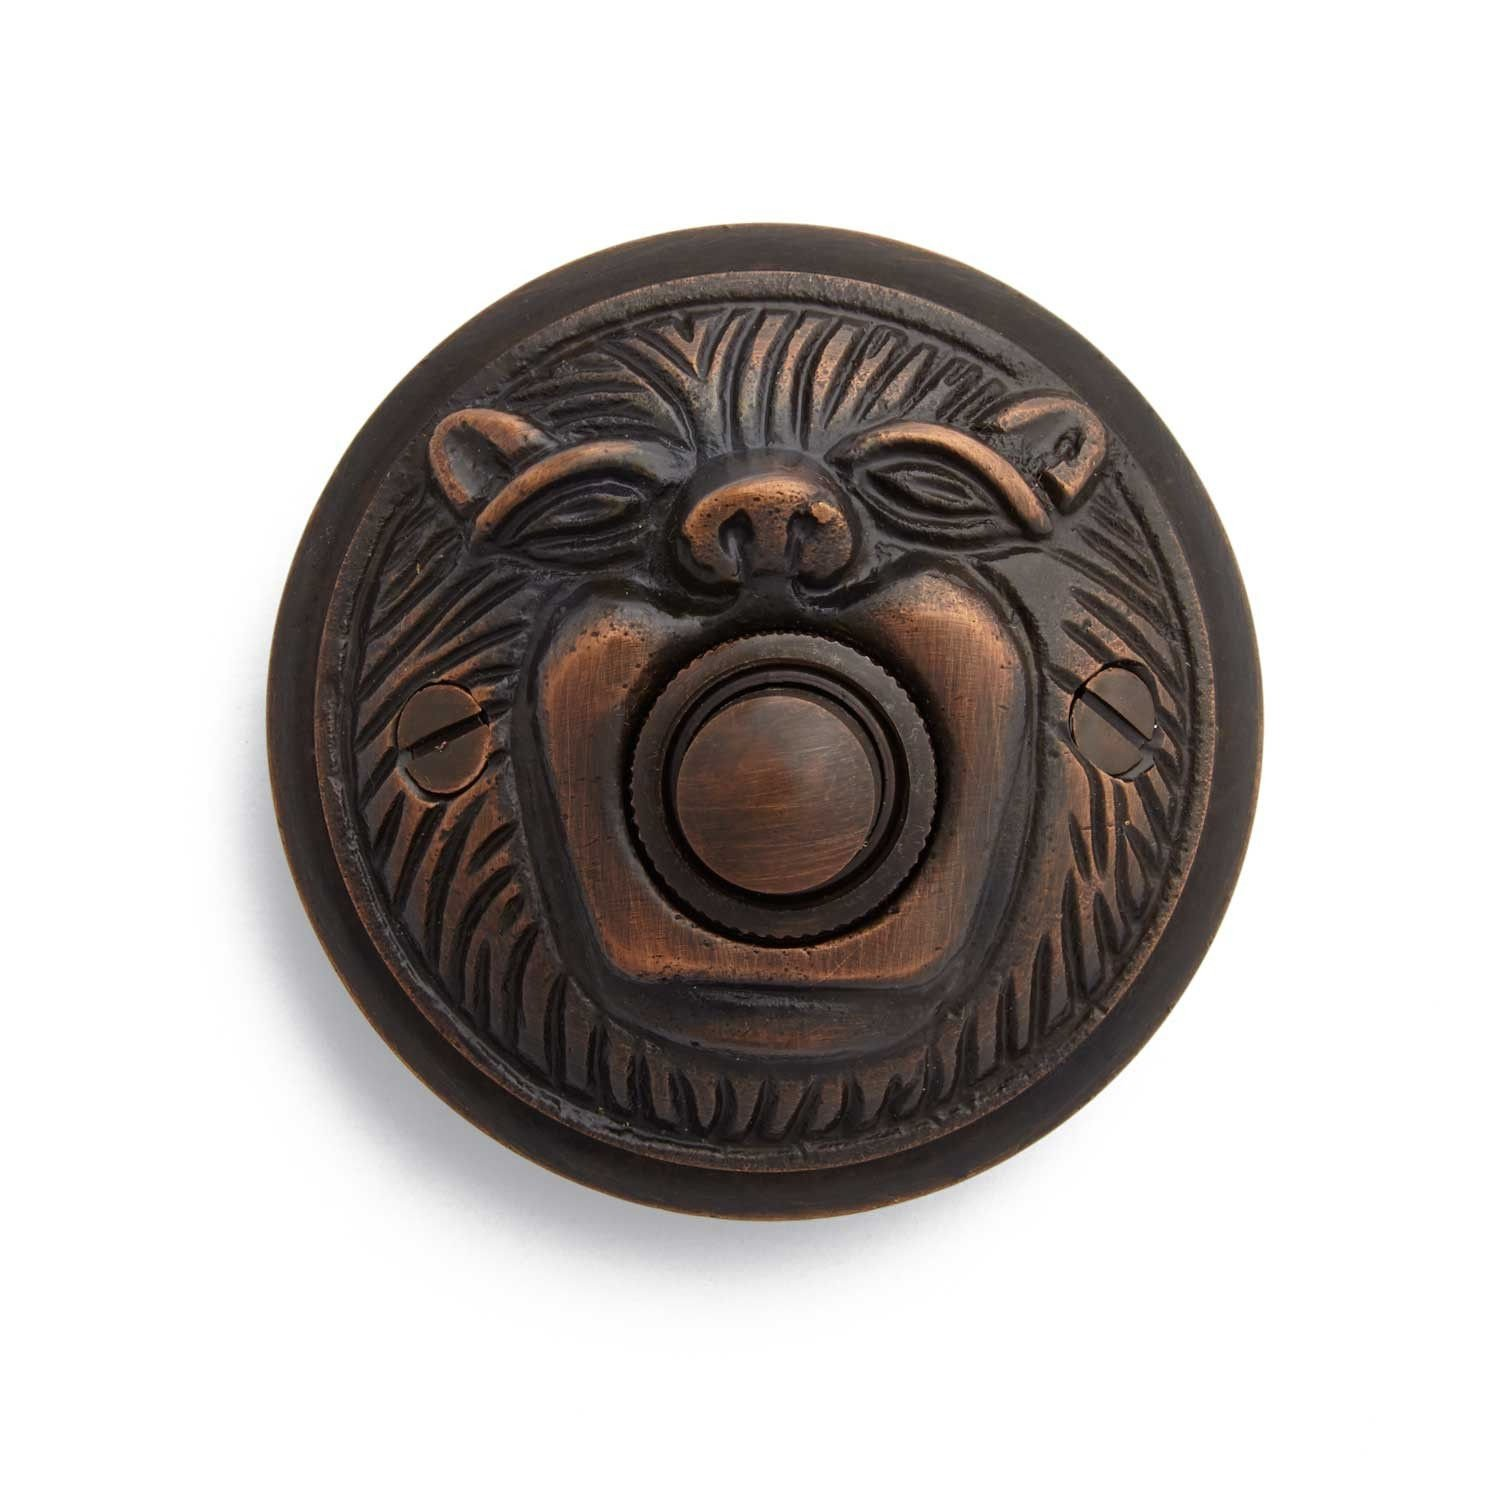 Casa Hardware Lion's Head Solid Brass Metal Doorbell with Push Button in Oil Rubbed Bronze Finish